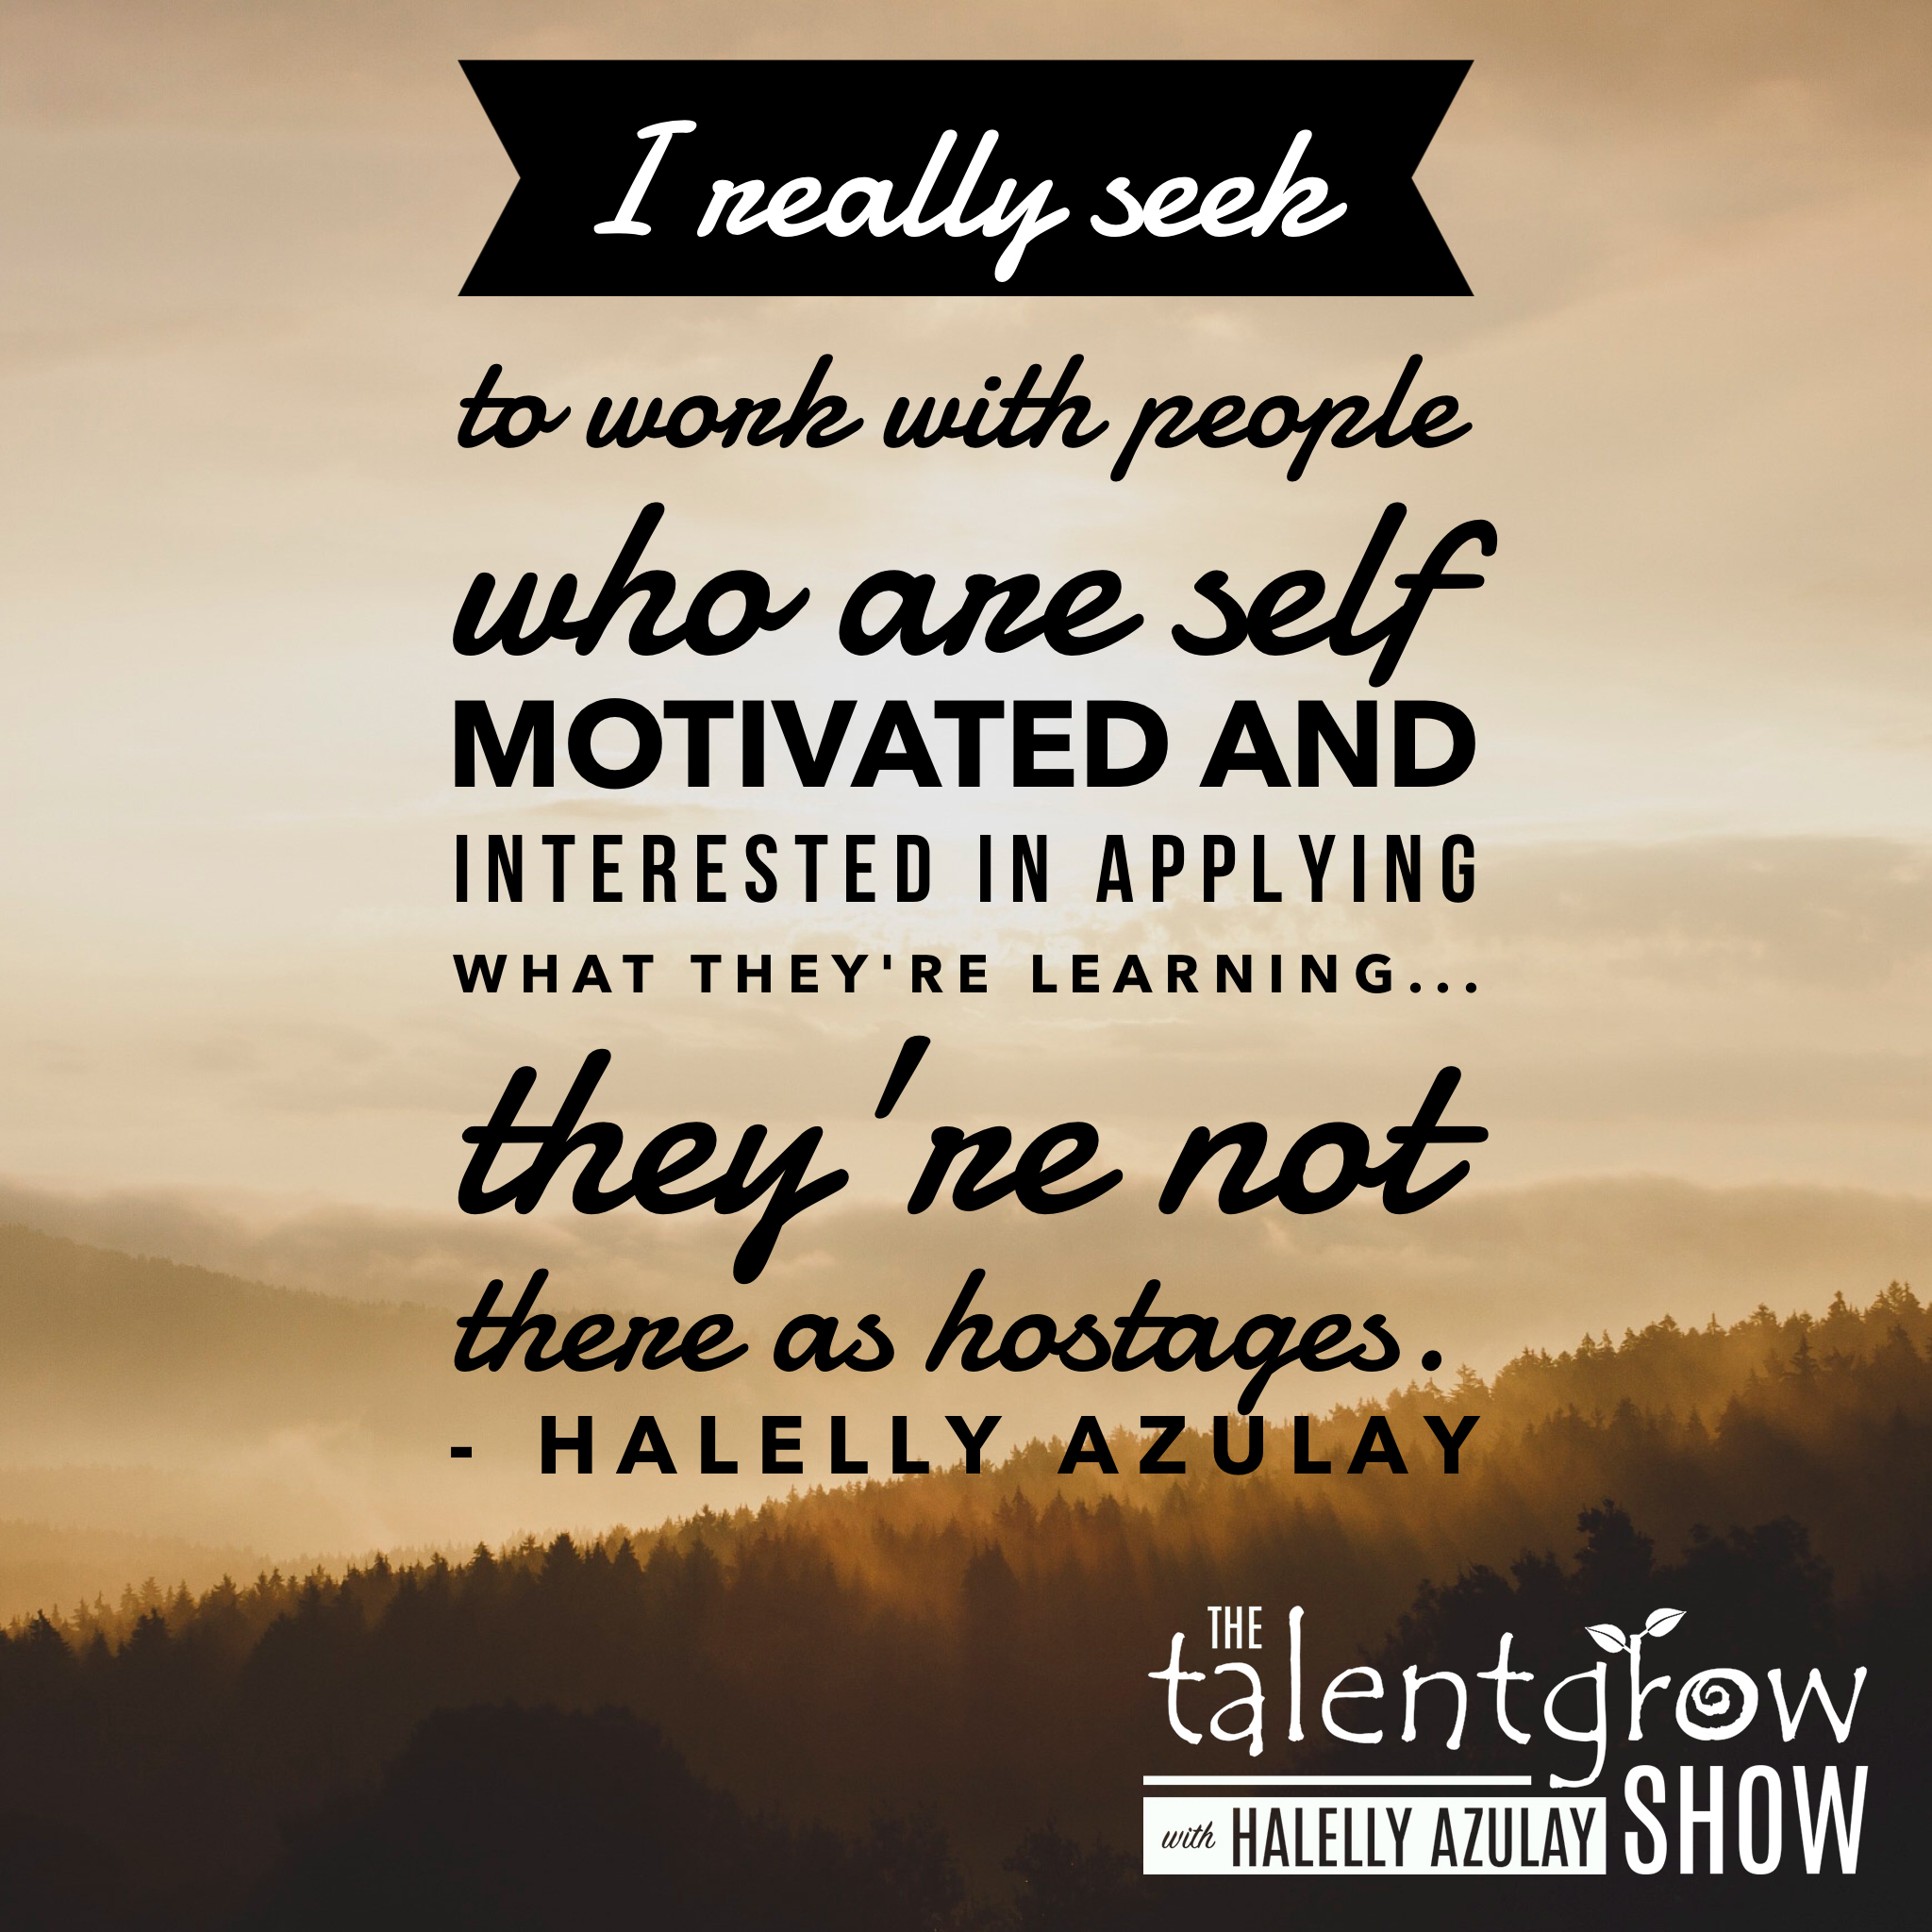 Learners are not hostages by Halelly Azulay on the TalentGrow Show podcast the Flipped Episode